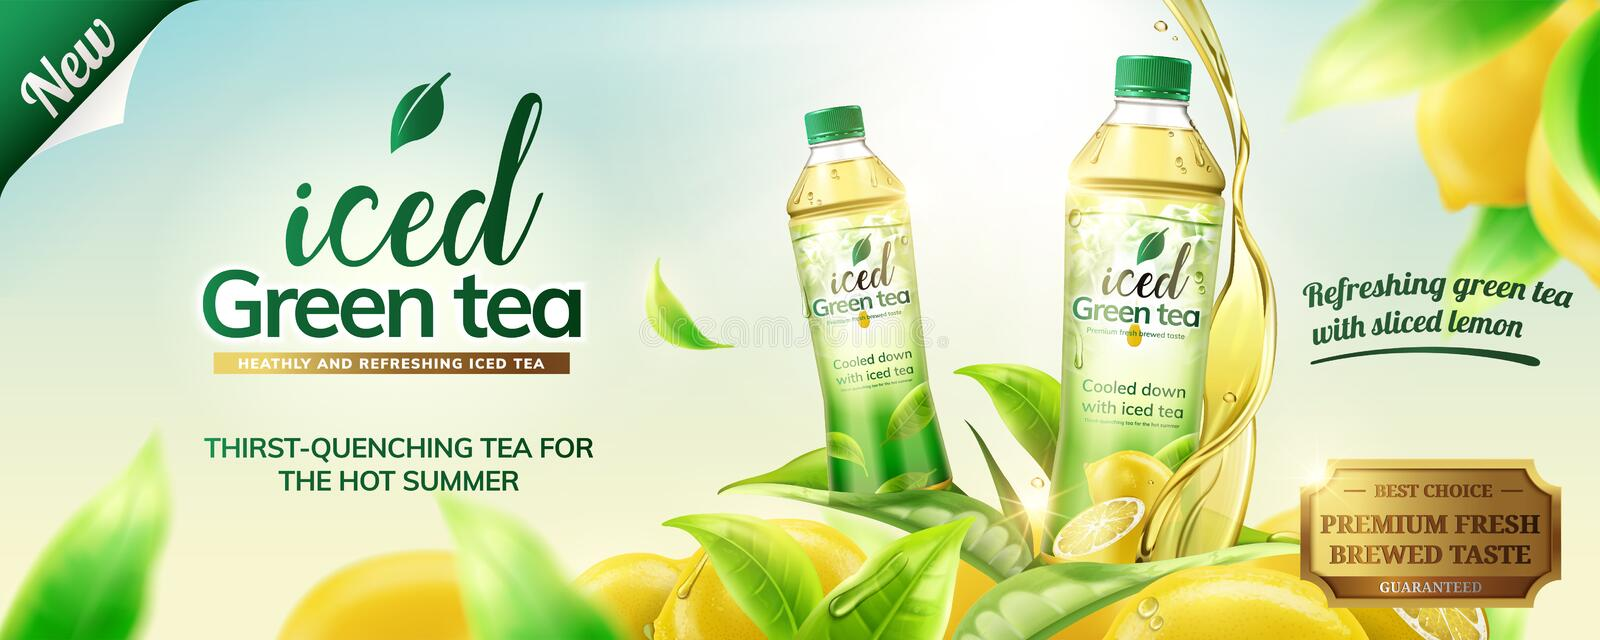 Iced green tea ads. With bottles on lemons and leaves flying around them, 3d illustration on outdoor background vector illustration